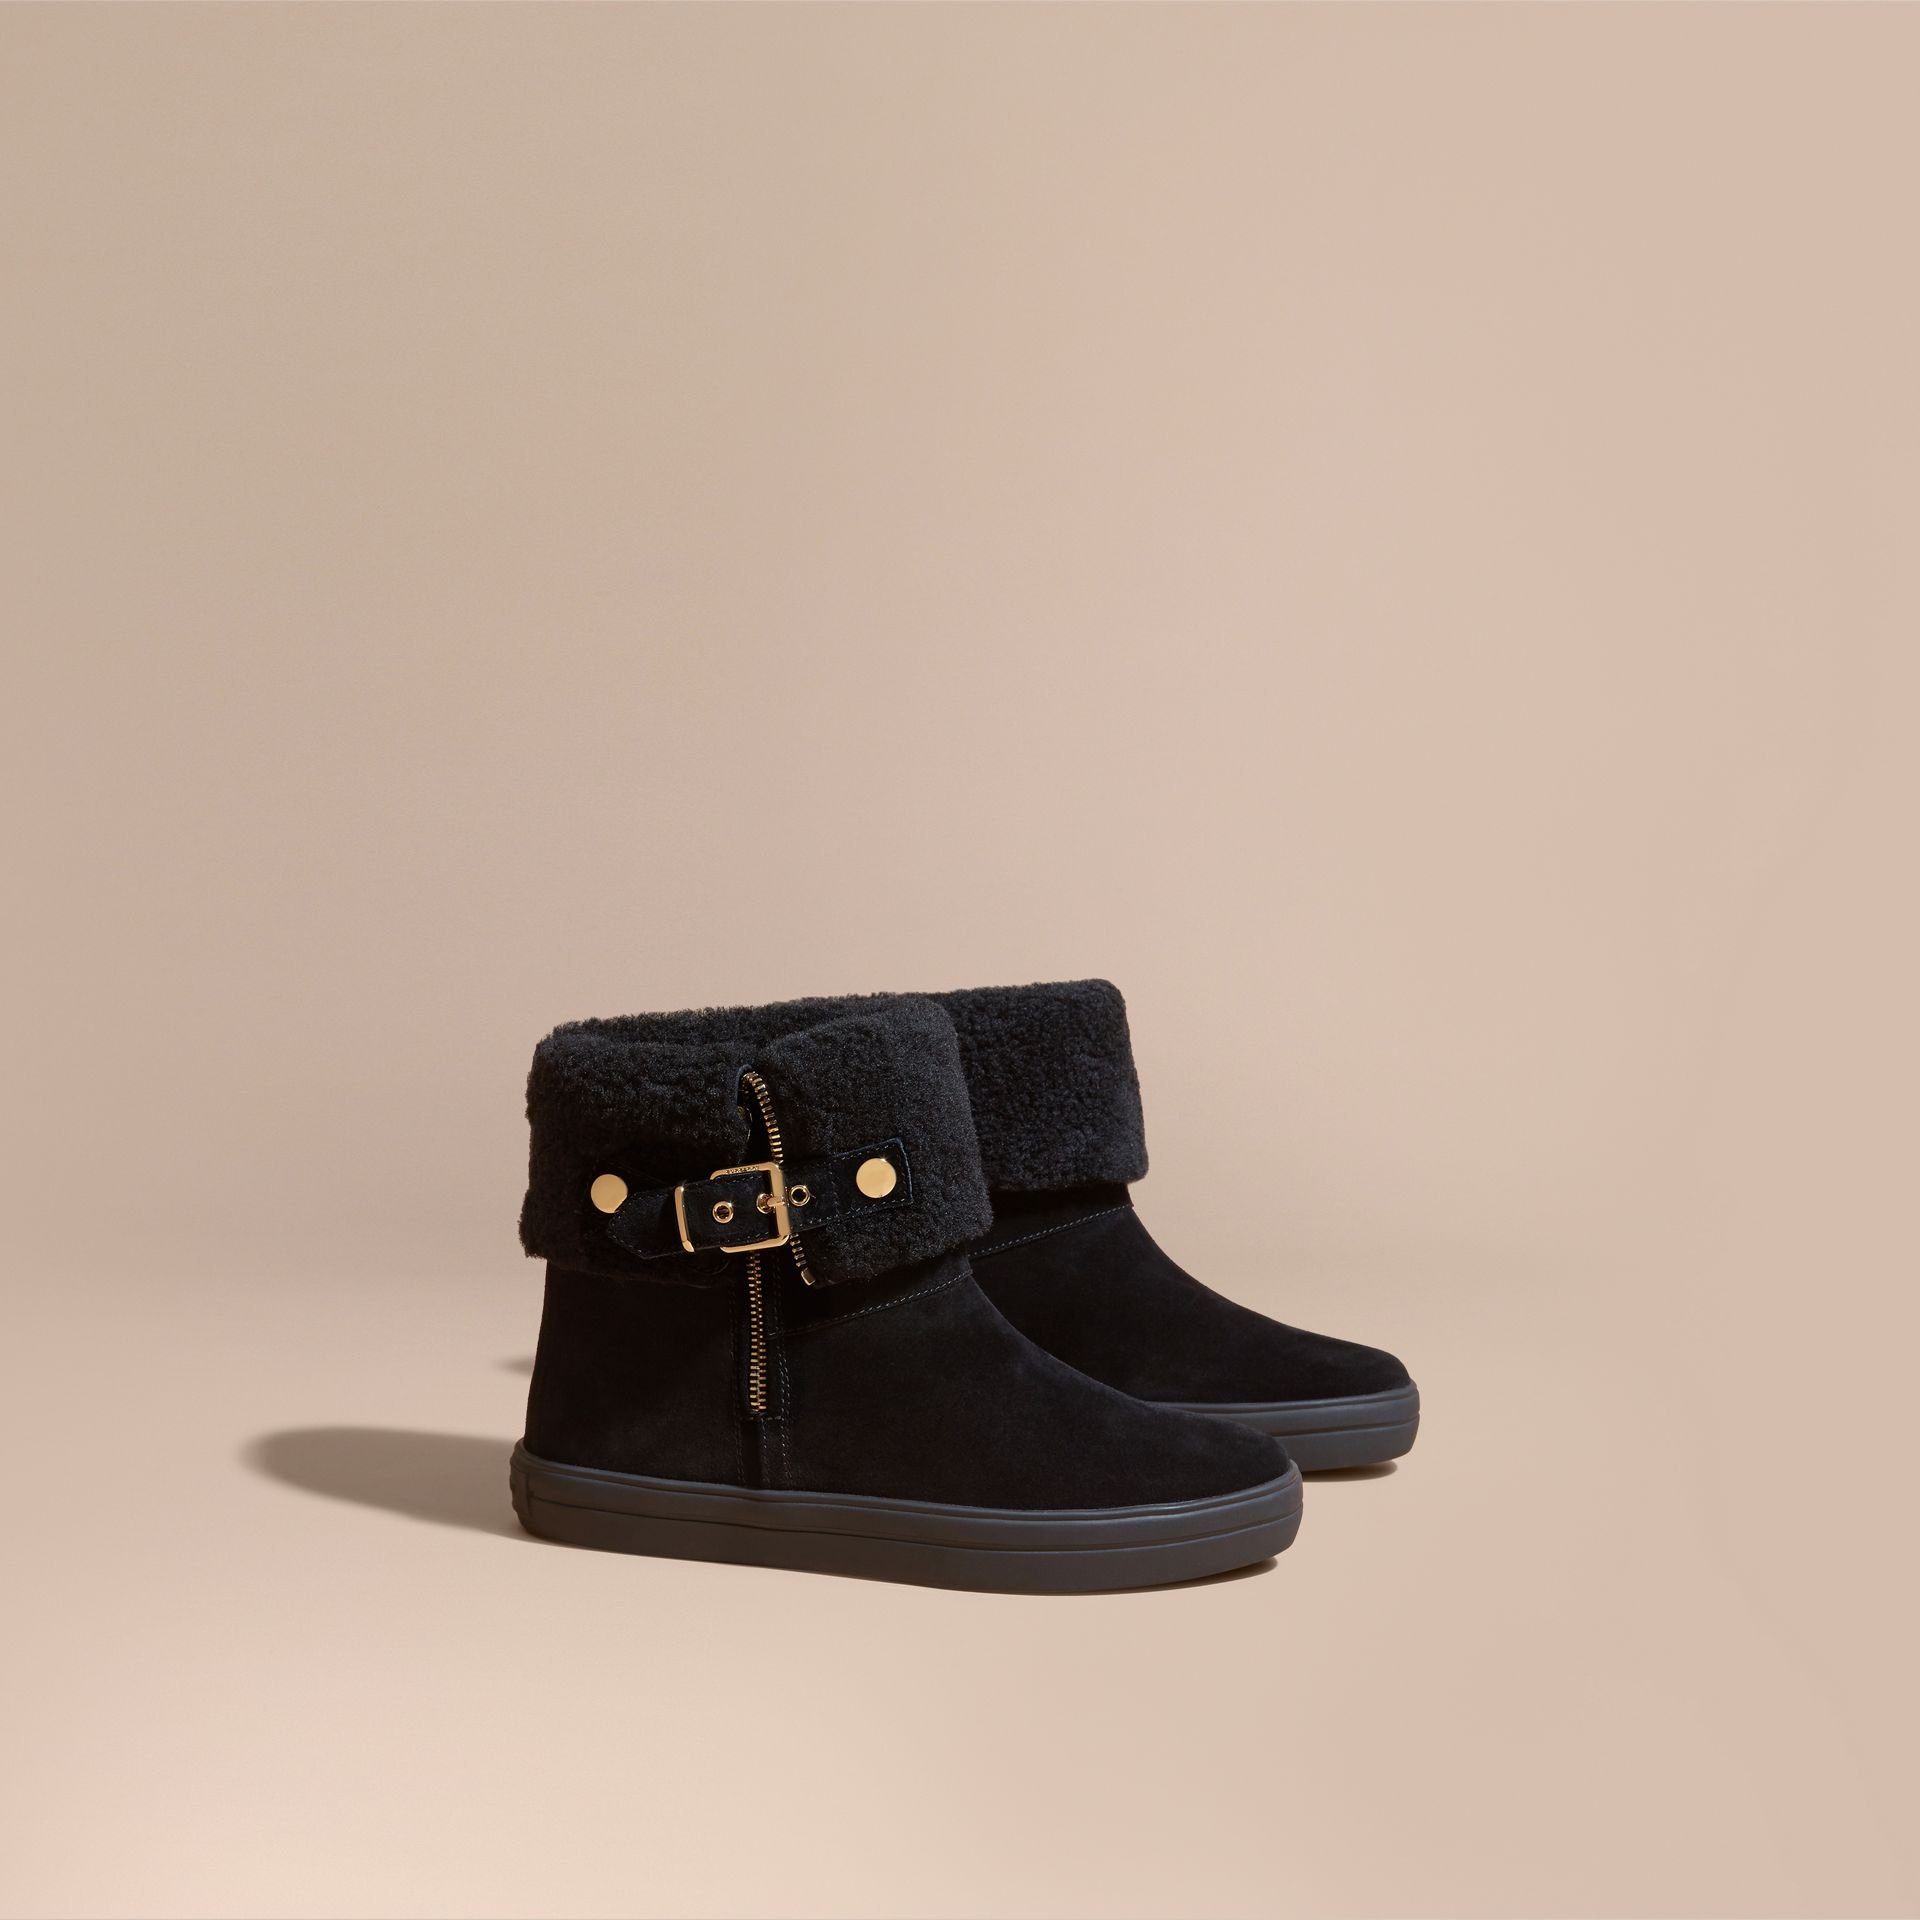 Shearling-lined Suede Ankle Boots in Black - Women | Burberry Canada - gallery image 1